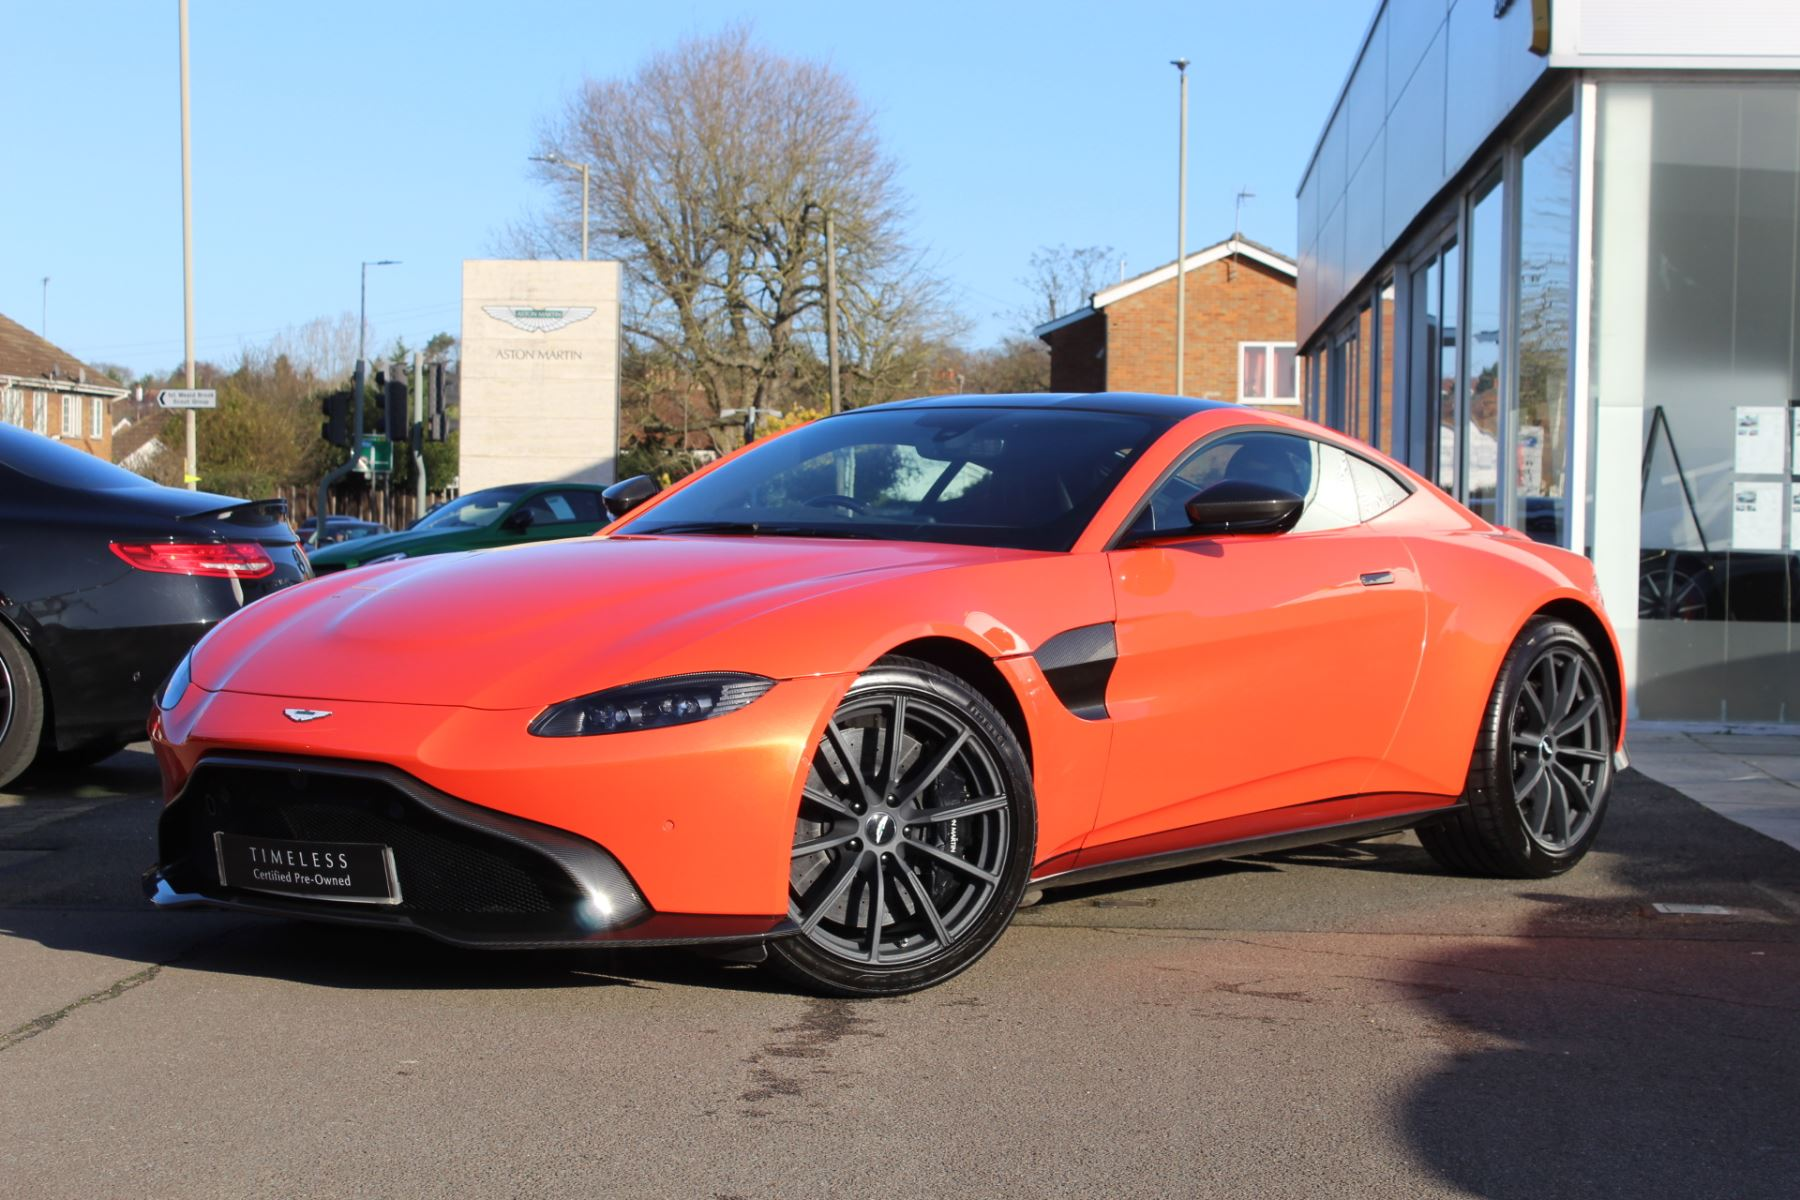 Aston Martin New Vantage 2dr ZF 8 Speed 4.0 Automatic 3 door Coupe (2018)